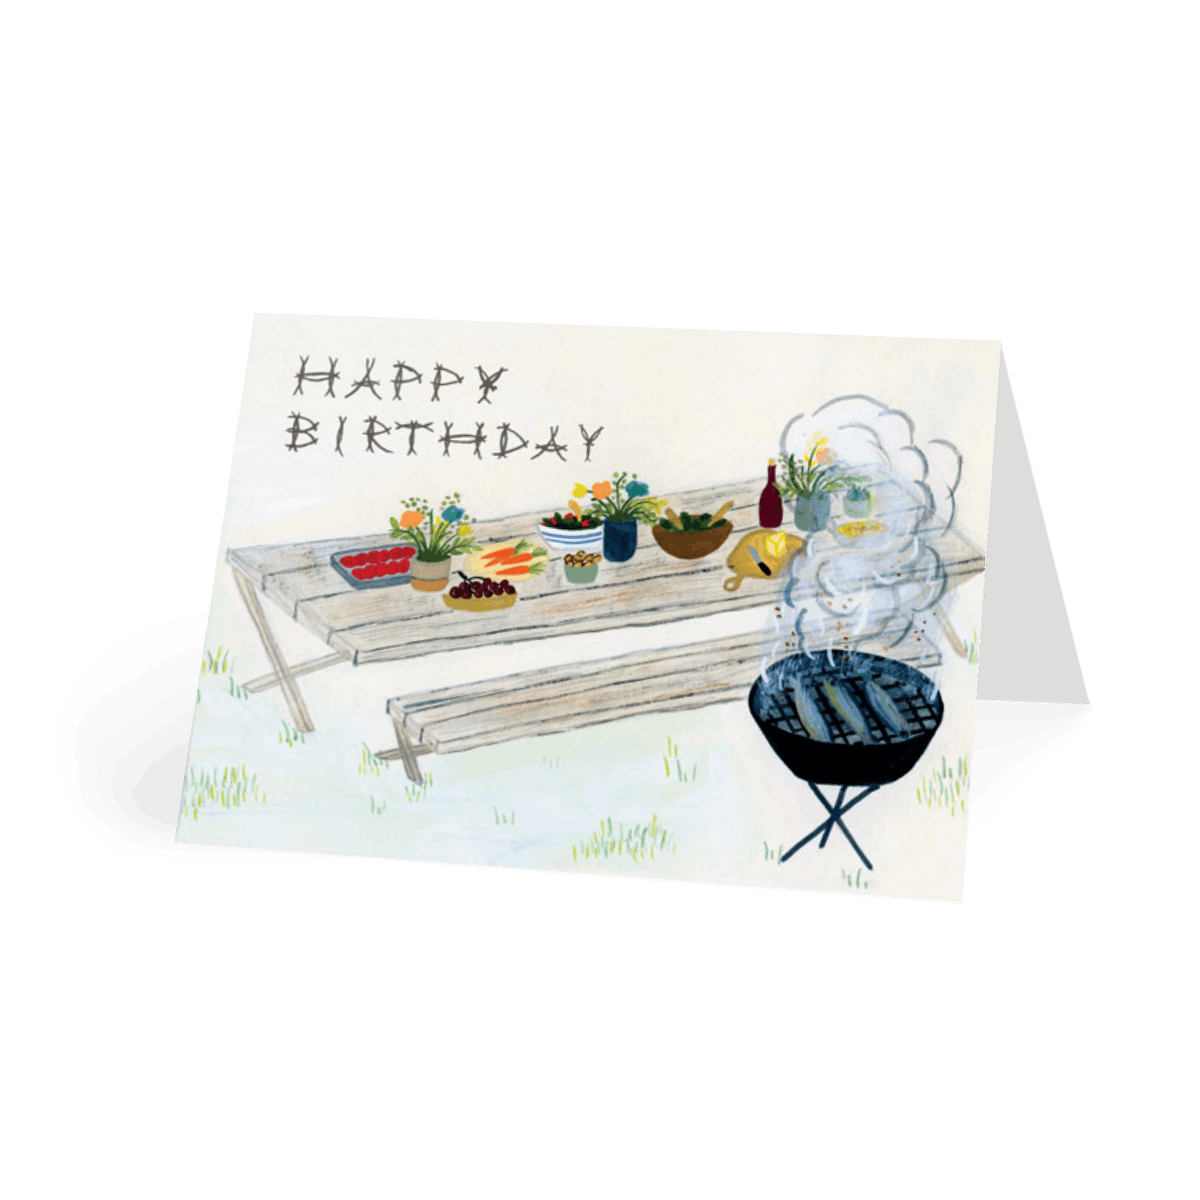 Https%3a%2f%2fwww.papier.com%2fproduct image%2f17364%2f14%2fbirthday picnic 4558 front 1485791470.png?ixlib=rb 1.1